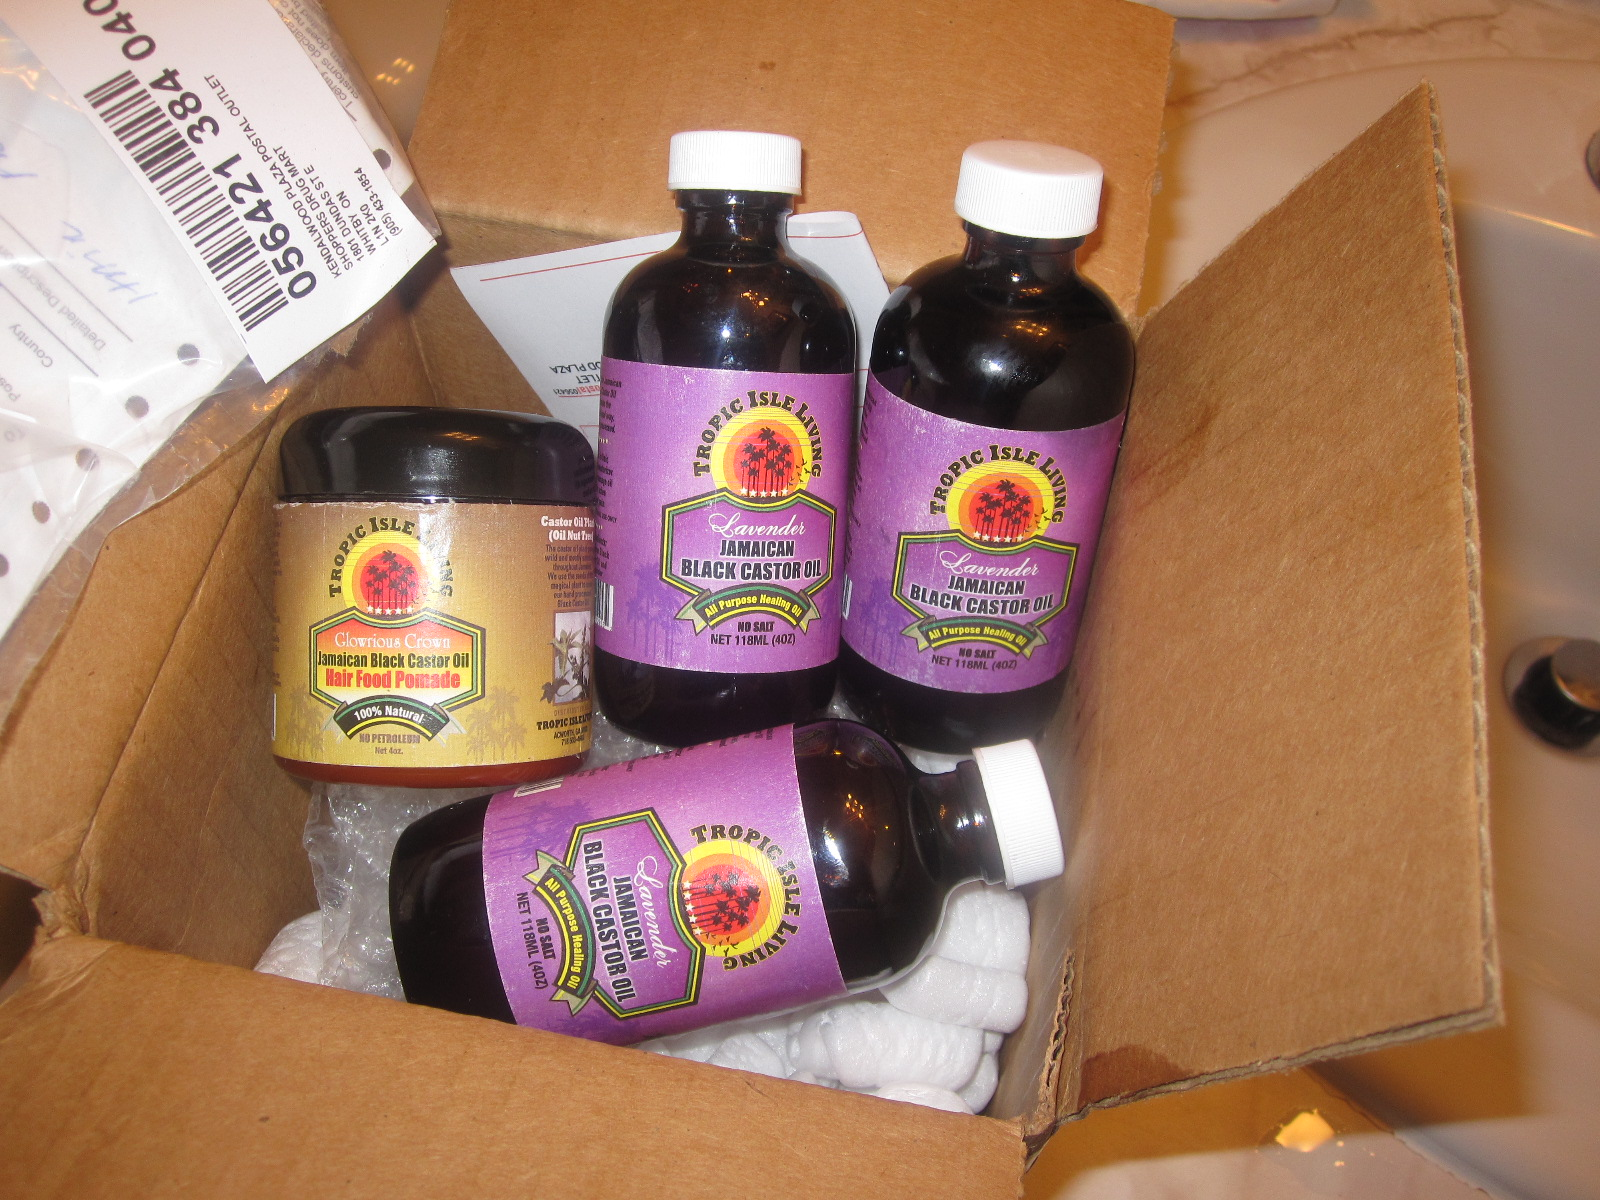 Theme of the day jamaican black castor oil for hair growth - How To Use Jamaican Black Castor Oil